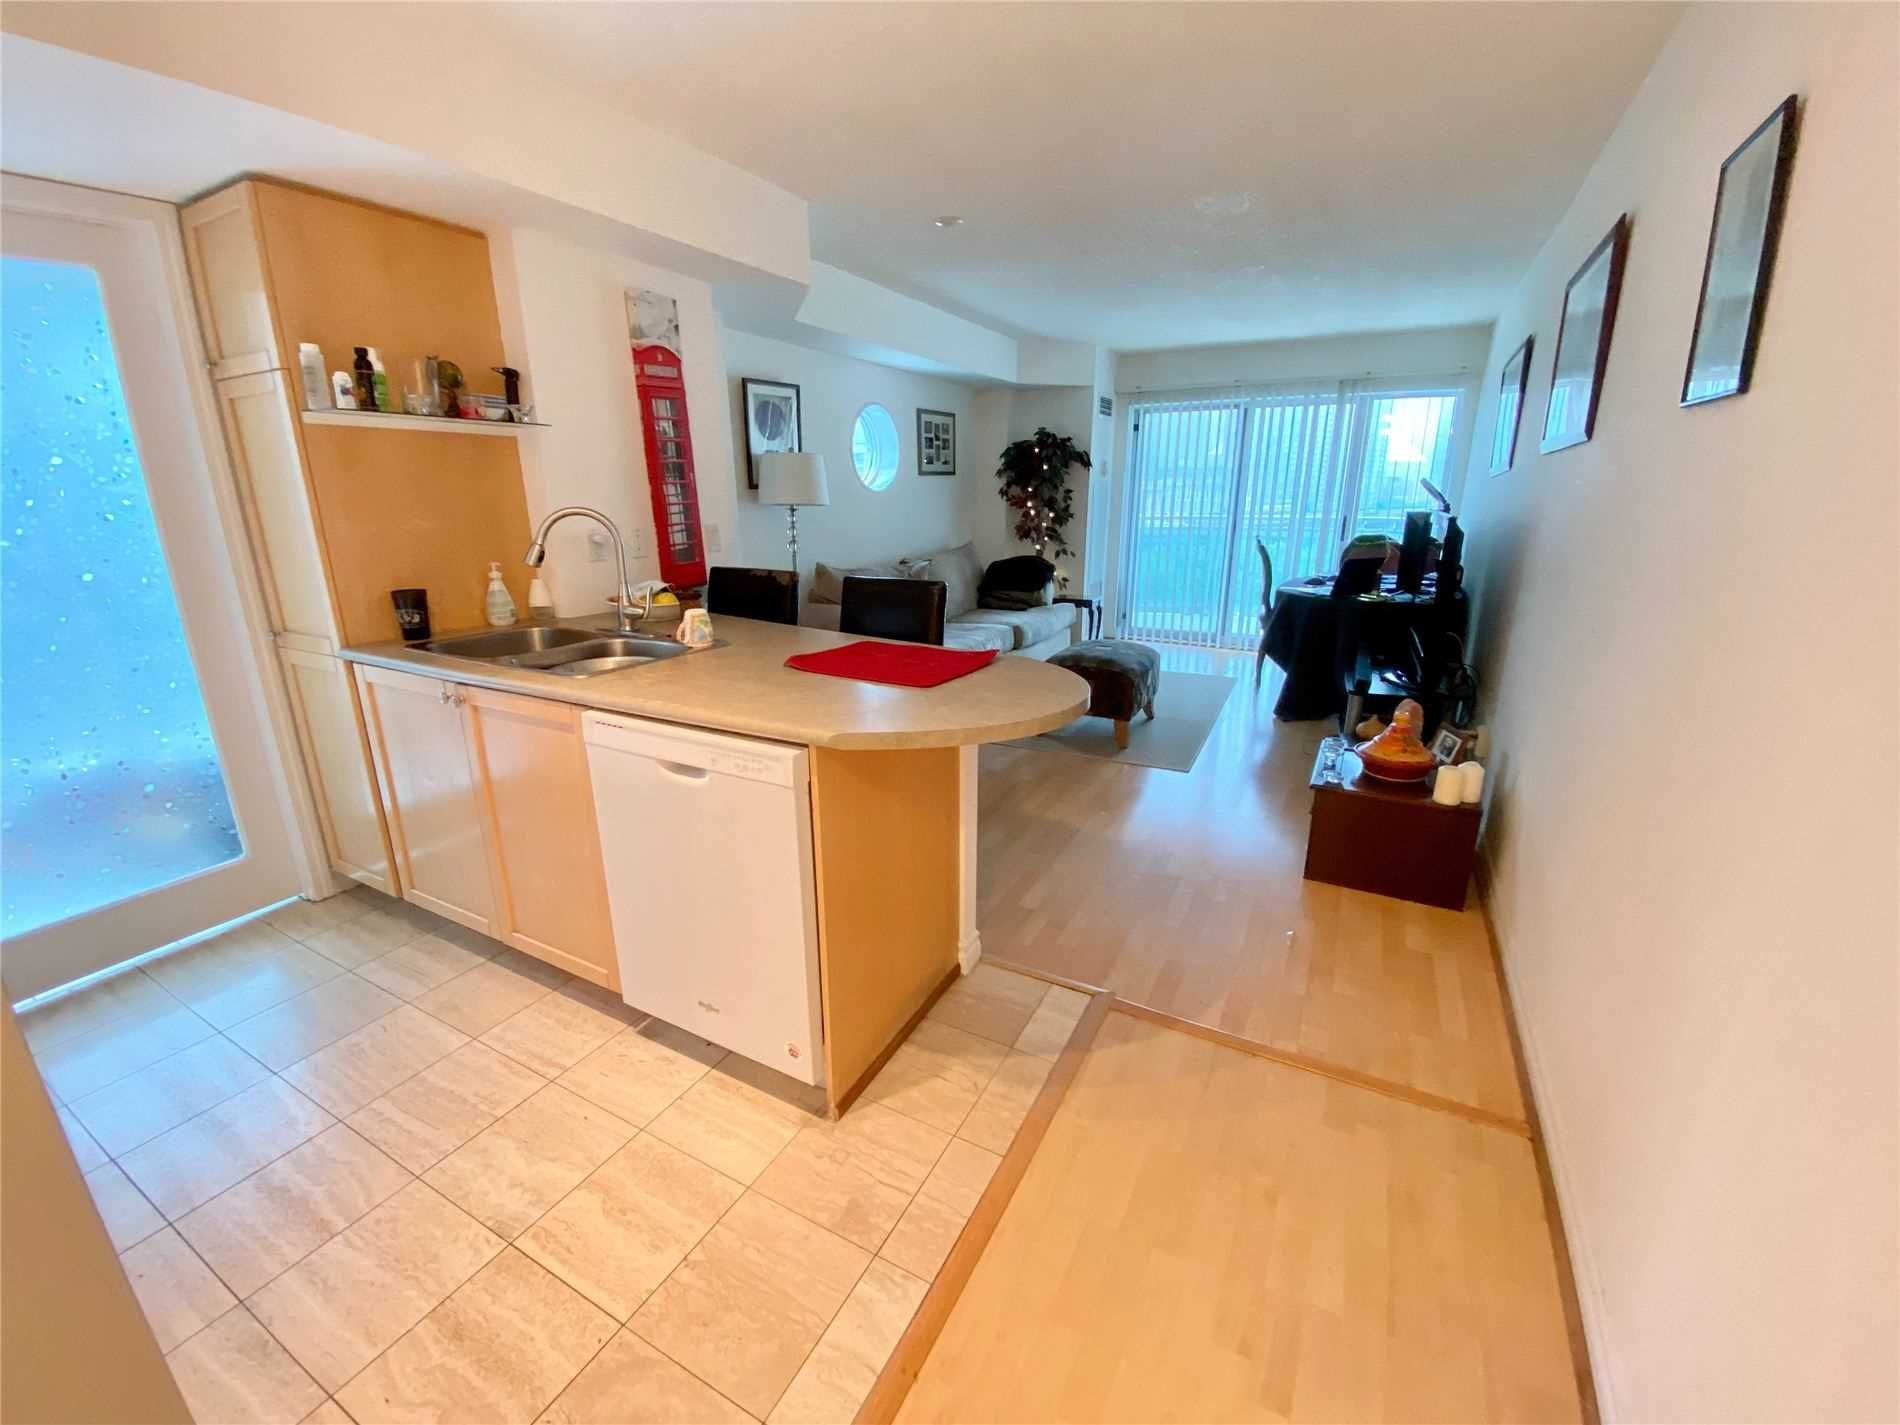 600 Queens Quay Ave W, unit 803 for rent in Toronto - image #2